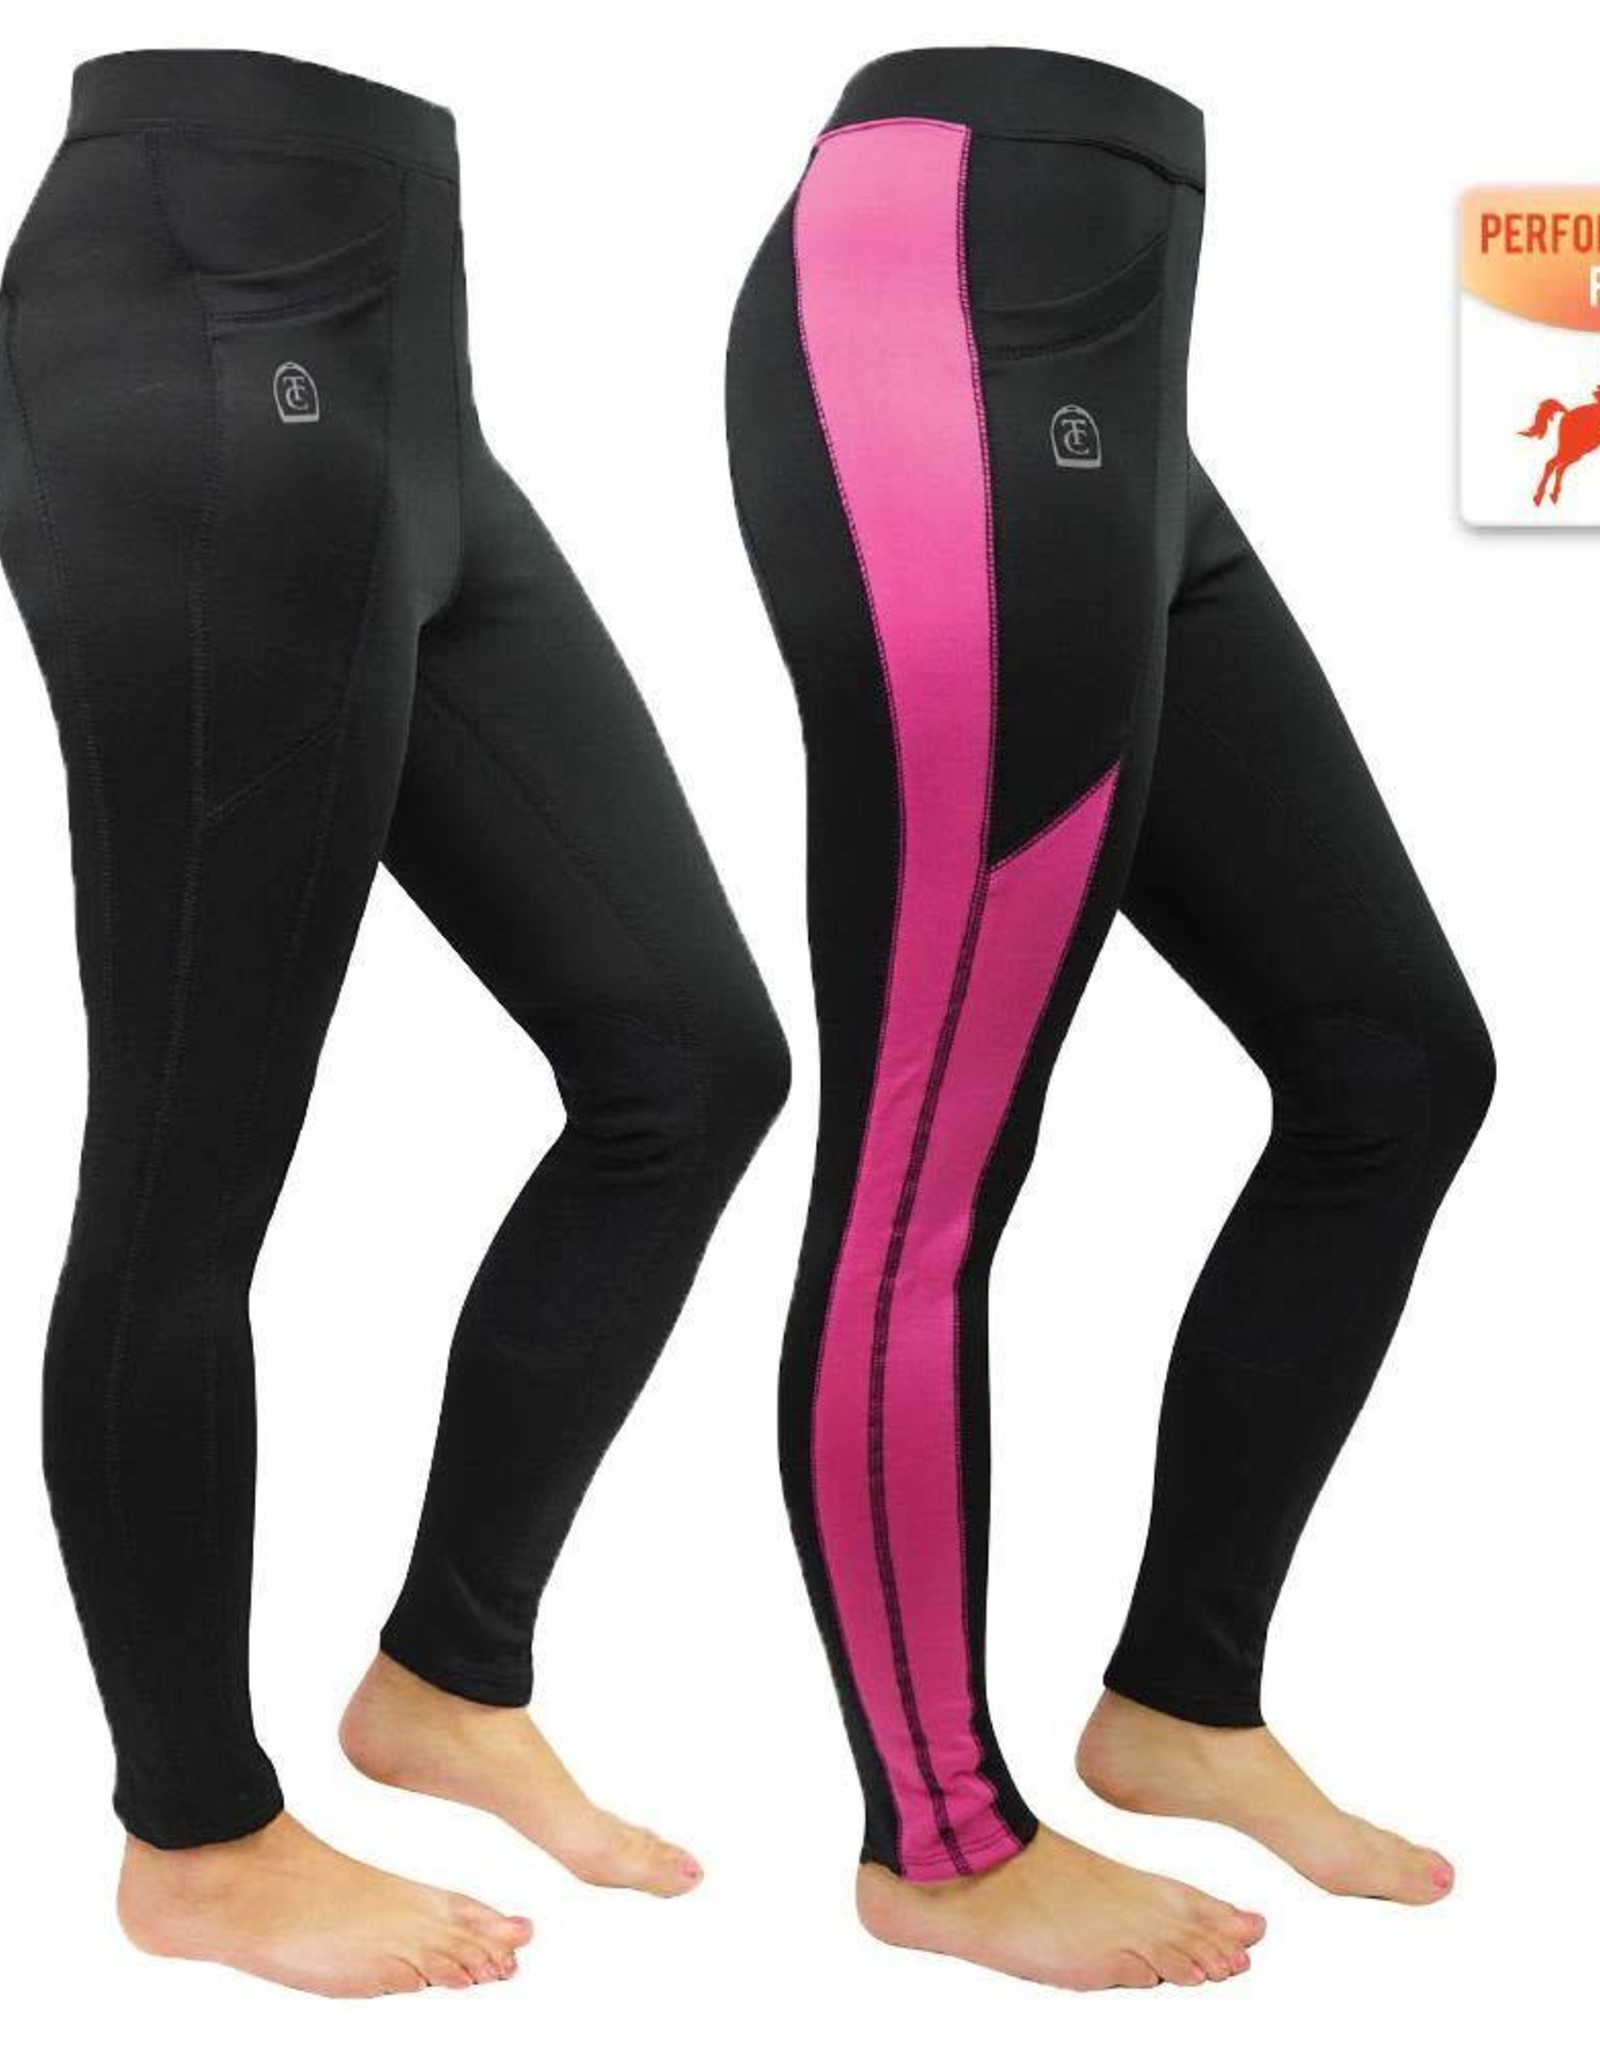 Thomas Cook Thomas Cook Ashley Performance Pull-on Tights - Black/Hot Pink - Size 16